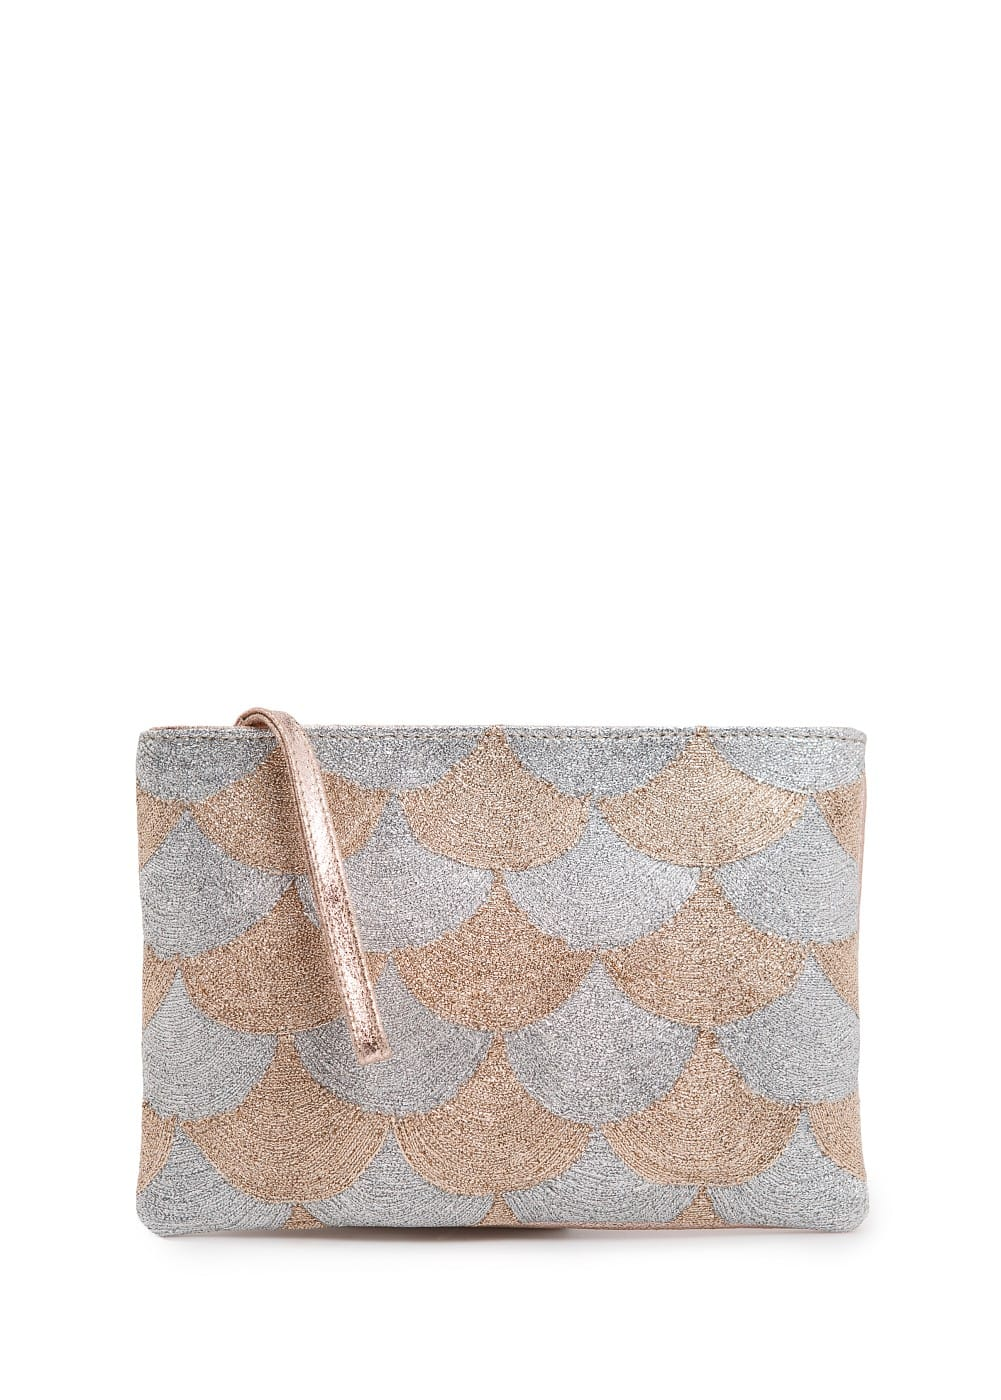 Scallop pattern metallic clutch